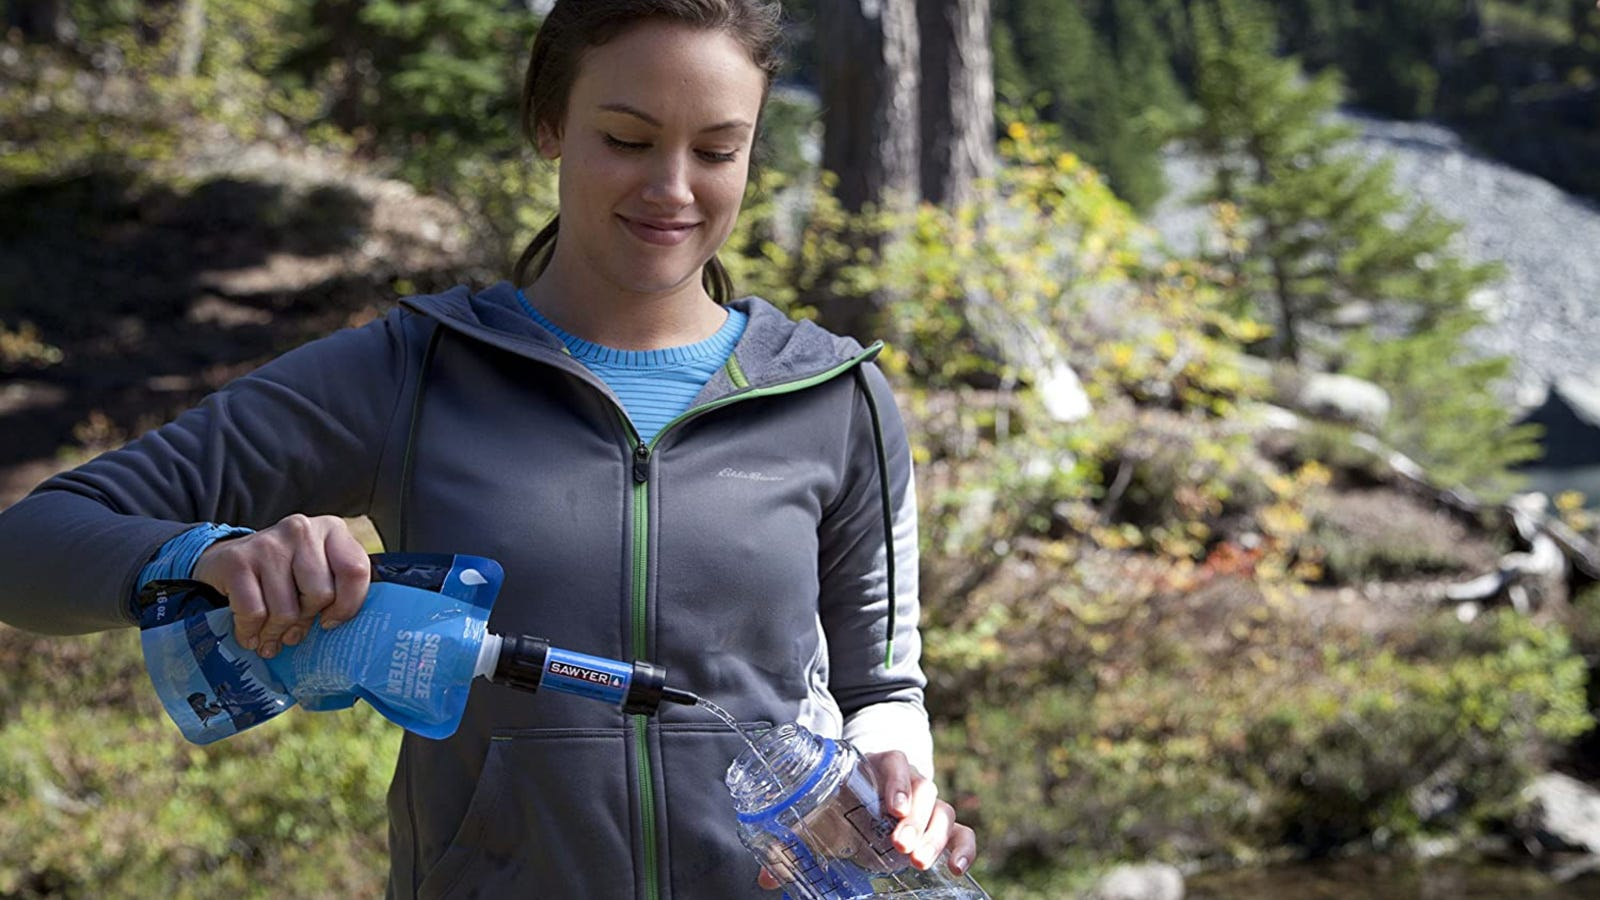 A hiker filling her water bottle with purified water from a sawyer products filtration system.